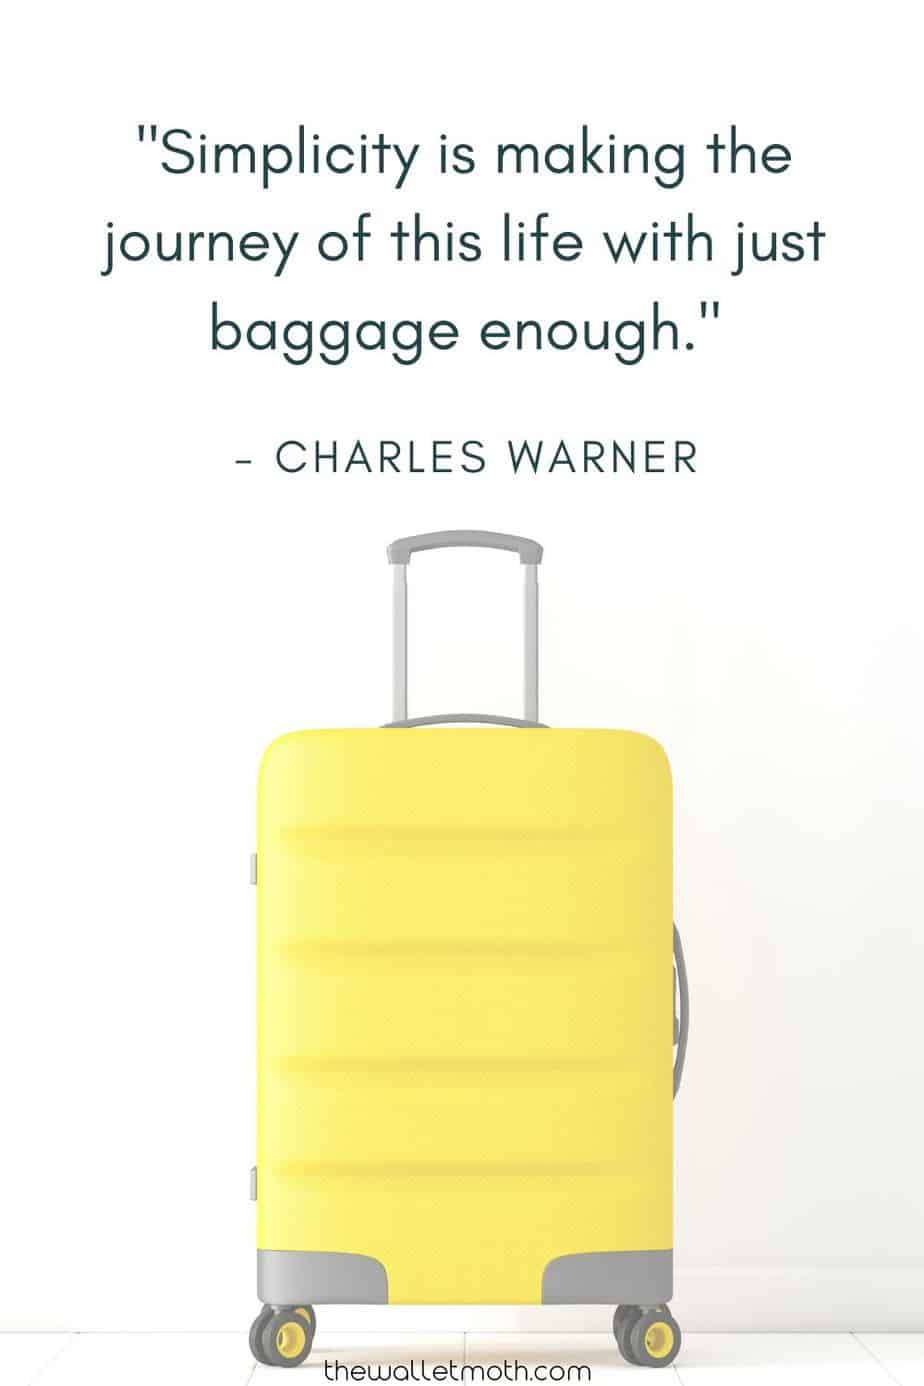 """Simplicity is making the journey of this life with  just baggage enough."" - charles warner"